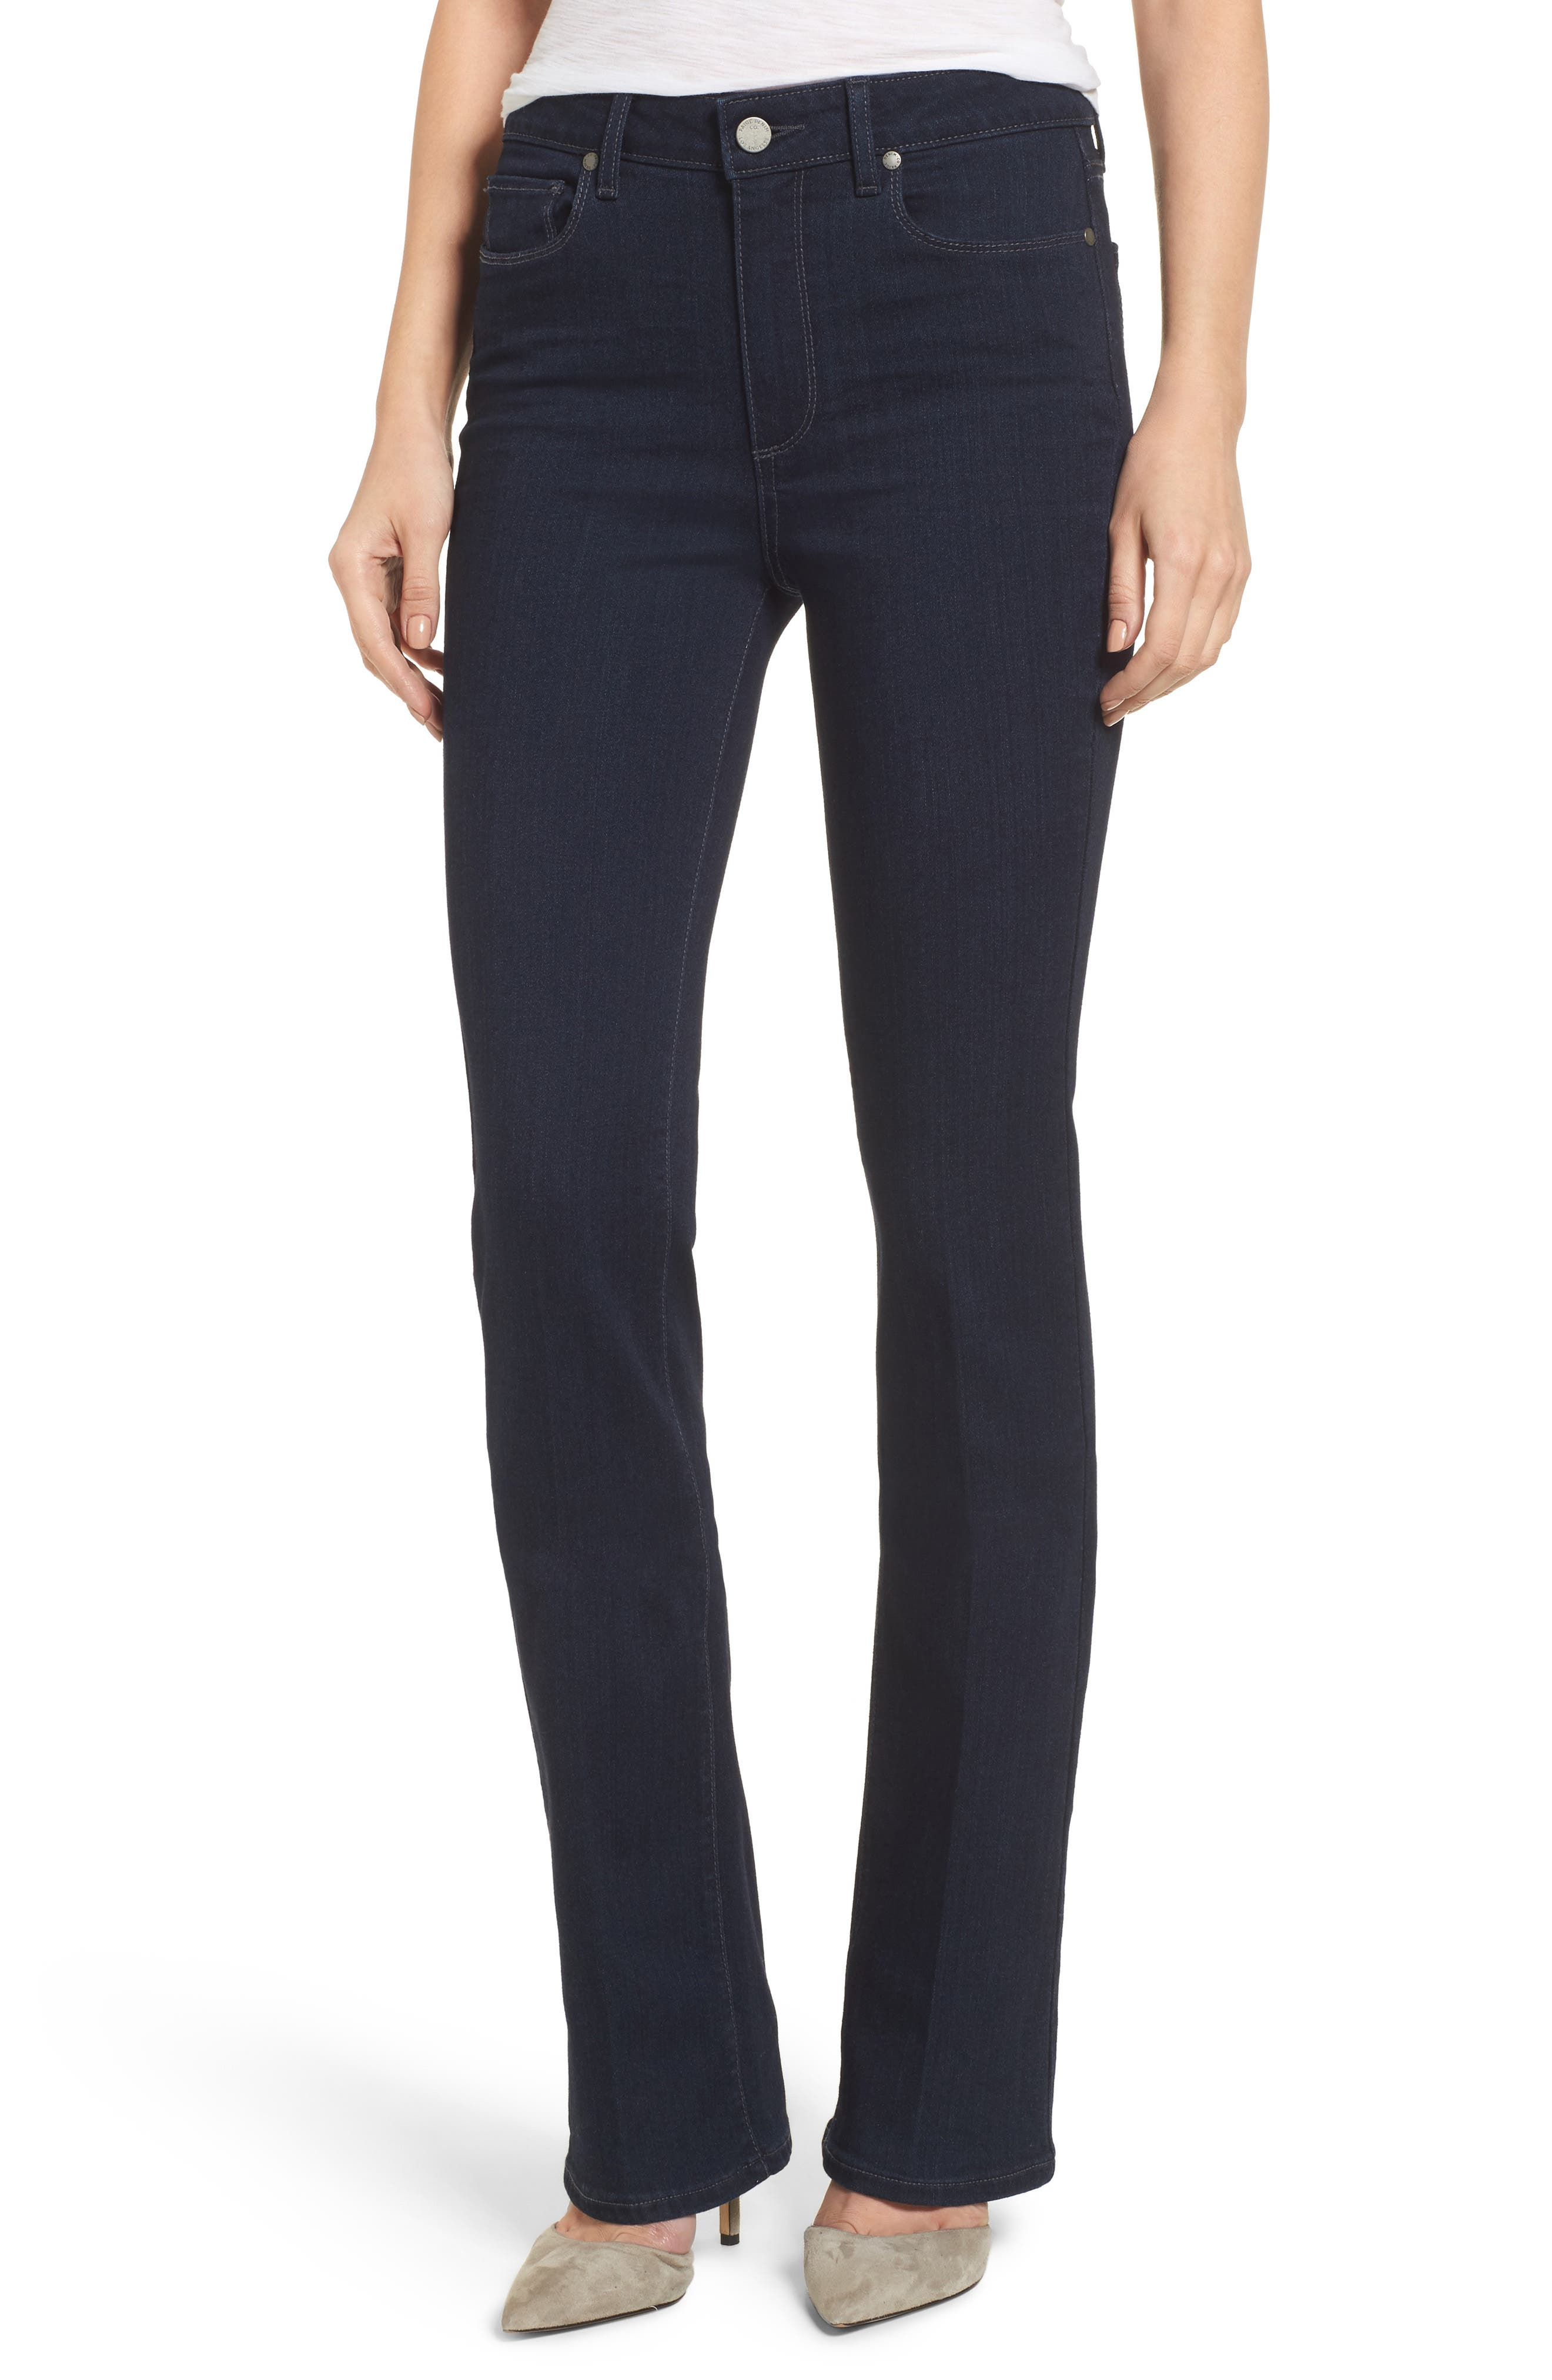 Transcend - Manhattan High Rise Bootcut Jeans,                         Main,                         color, 400